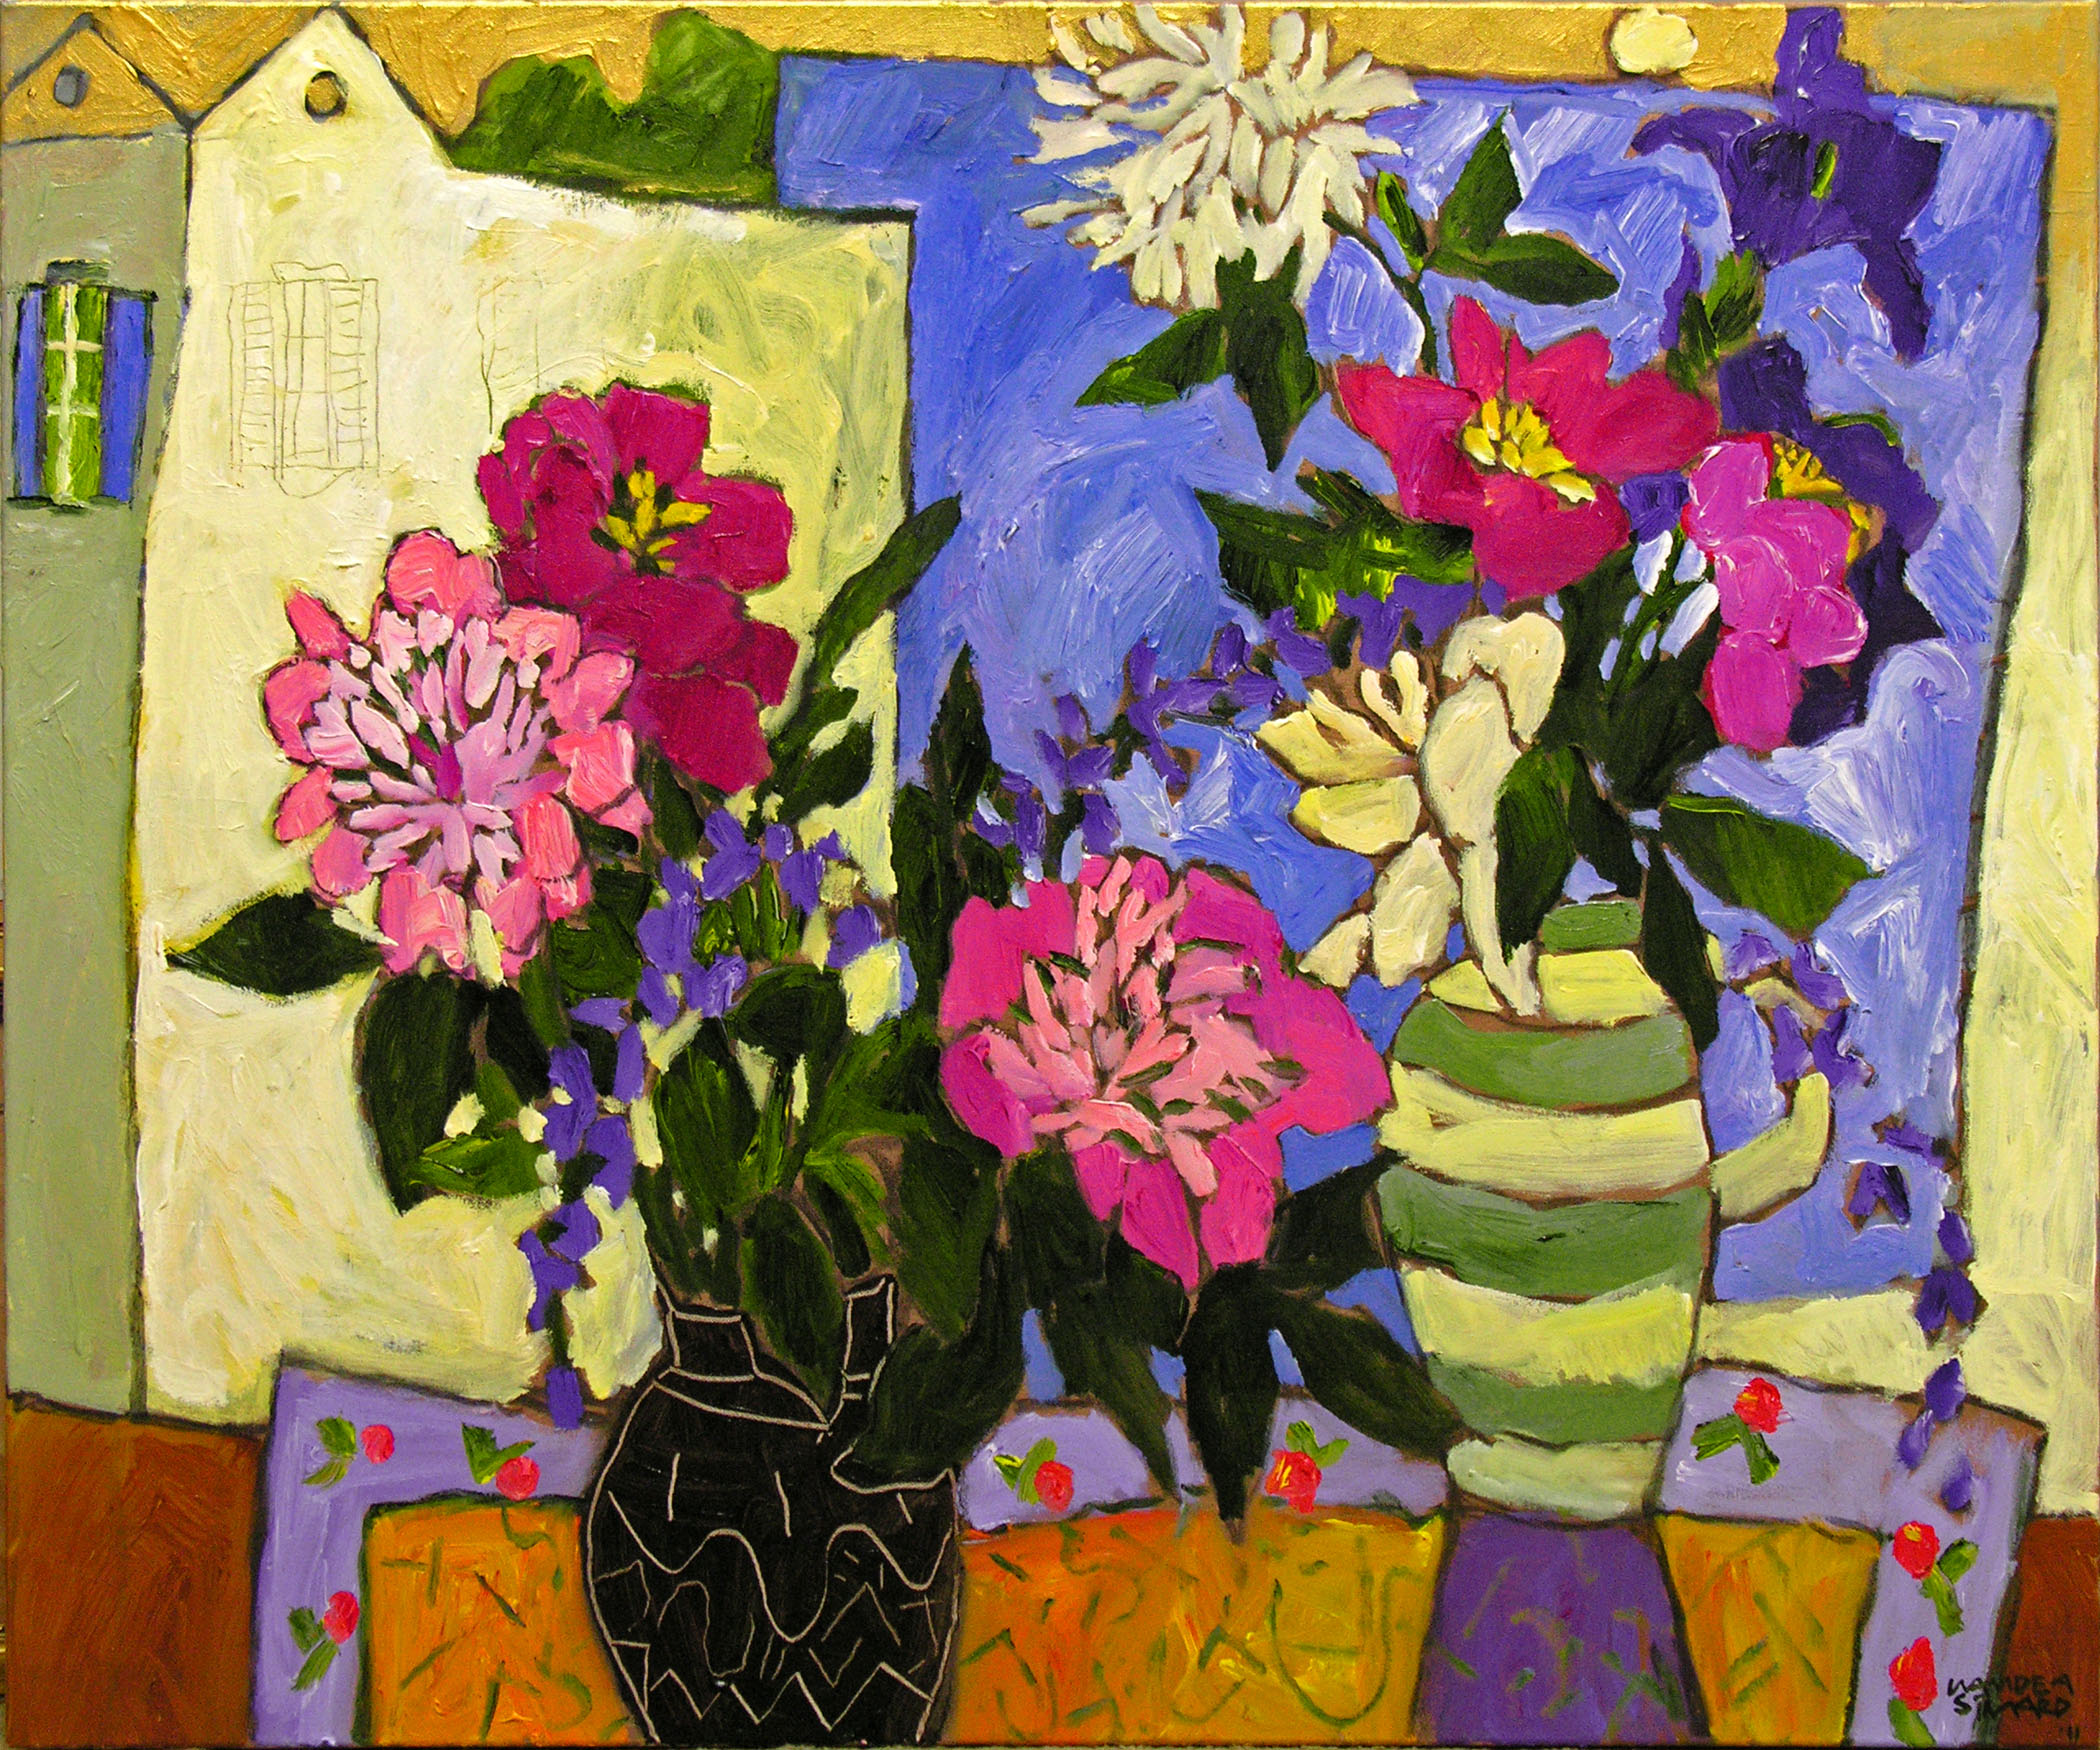 Claude A. Simard, RCA | Peonies in June | Acrylic on canvas 30 x 36 inches